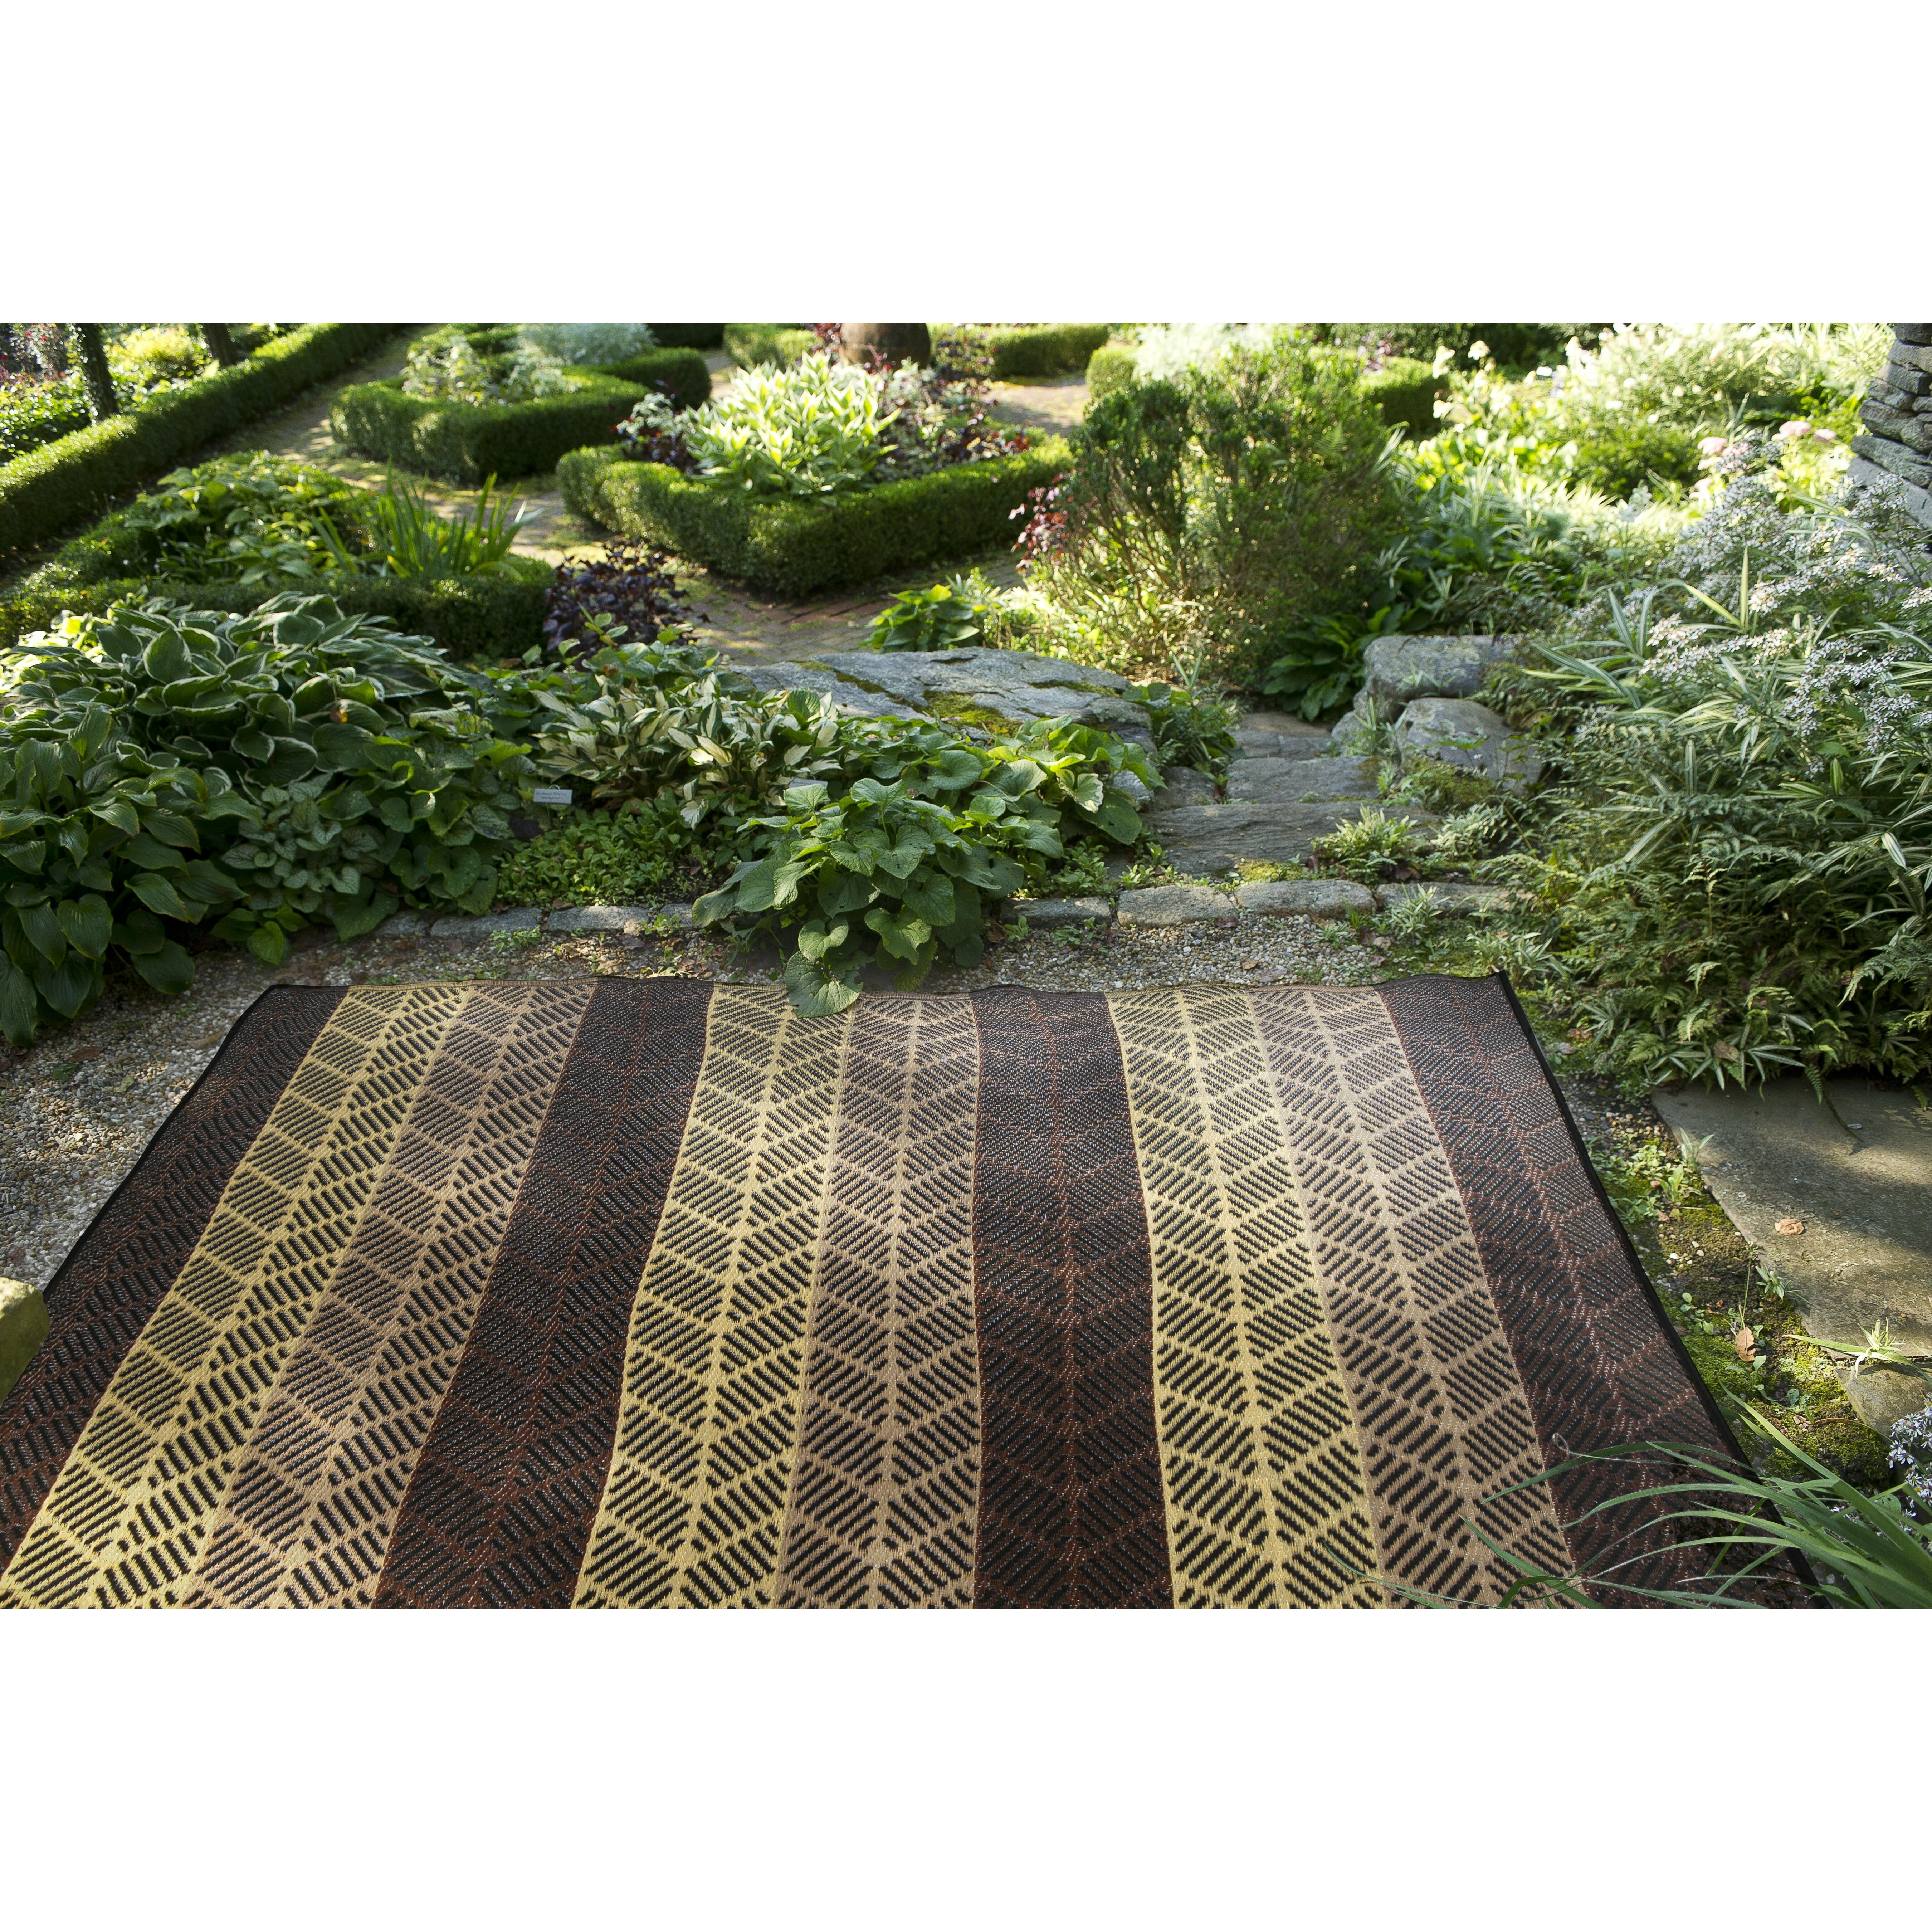 Fab rugs seattle world indoor outdoor area rug reviews for Landscape indoor area rug